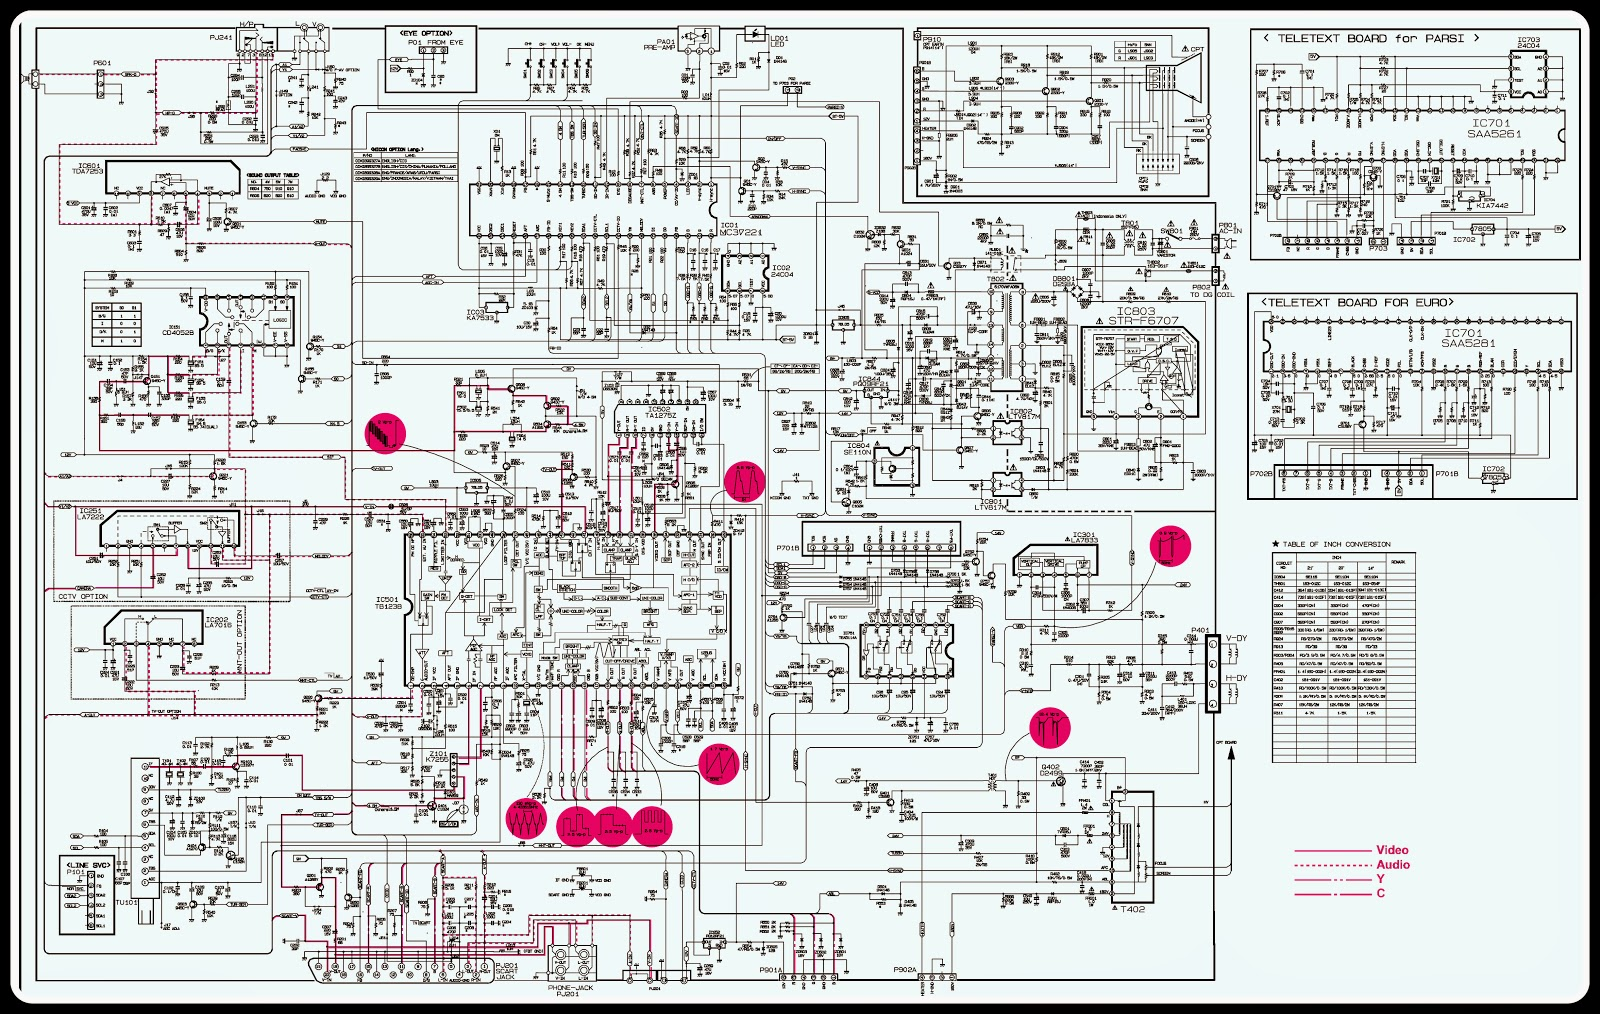 medium resolution of lg tv schematic diagrams wiring diagram operations lg tv circuit diagram including power supply schematic diagram